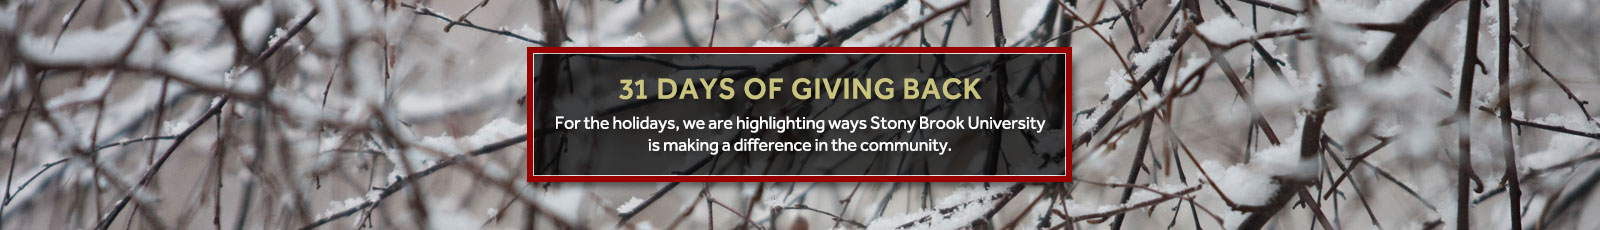 31-days-of-giving